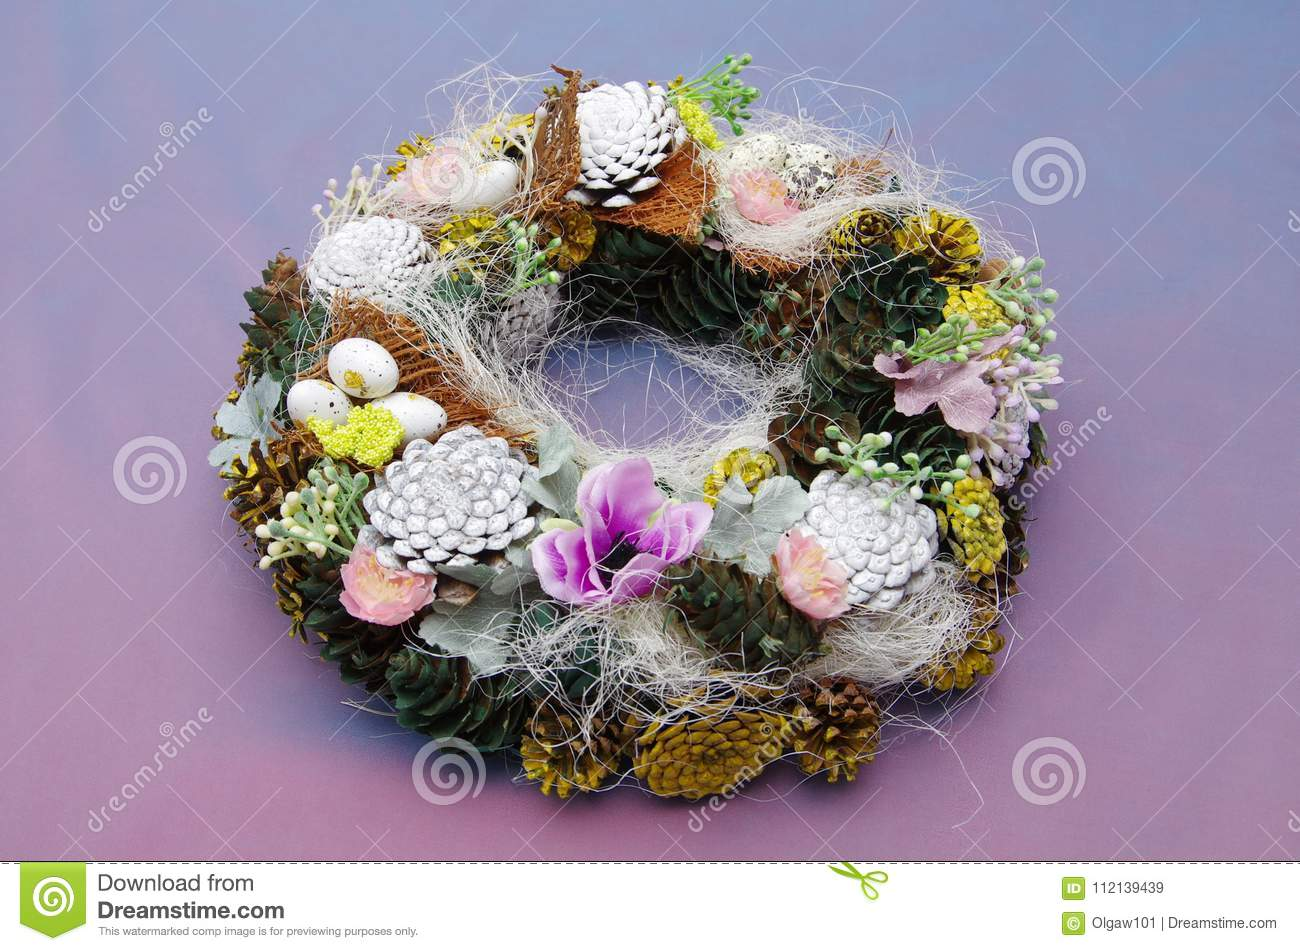 Easter Wreath Of Spring Theme Decor For A House In The Spring Style